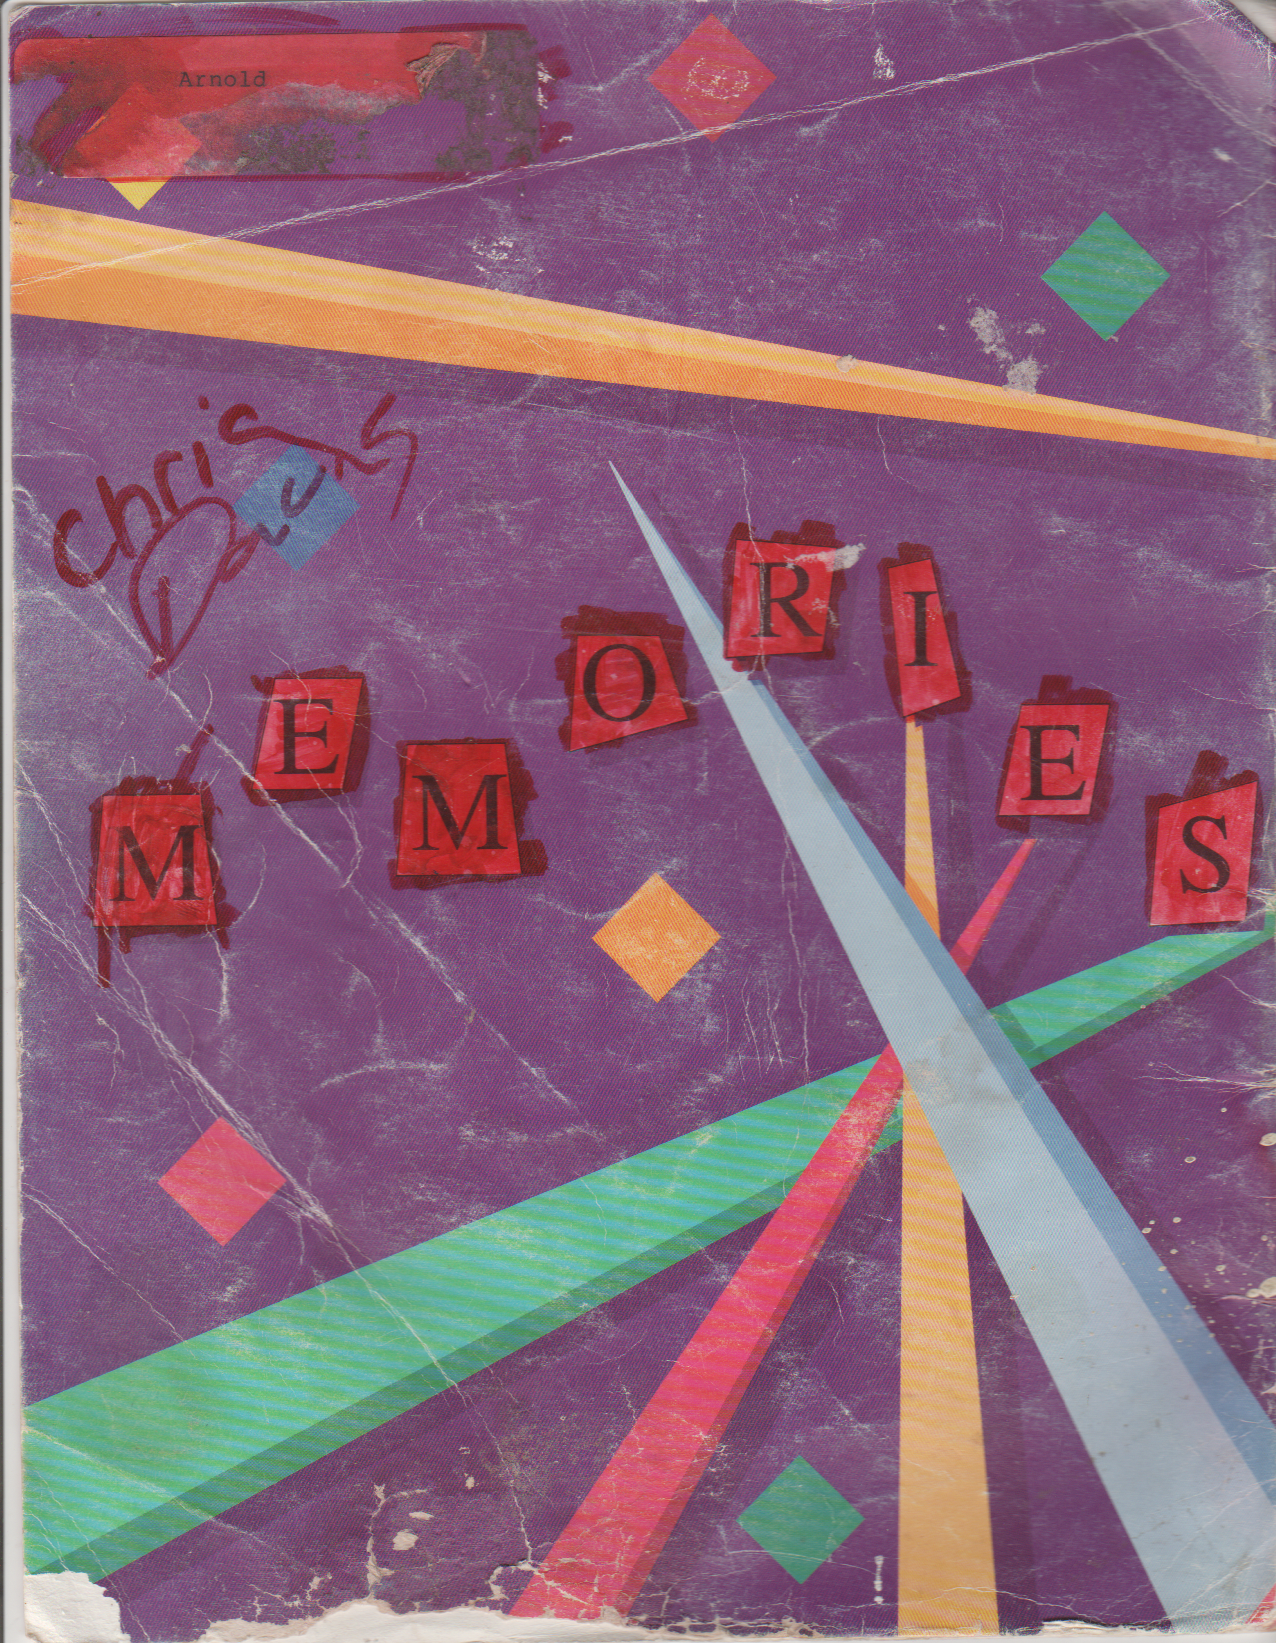 1994-06 - Katie Arnold, Neil Armstrong Memories Yearbook Cover, Signatures, Messages From Classmates-4.png